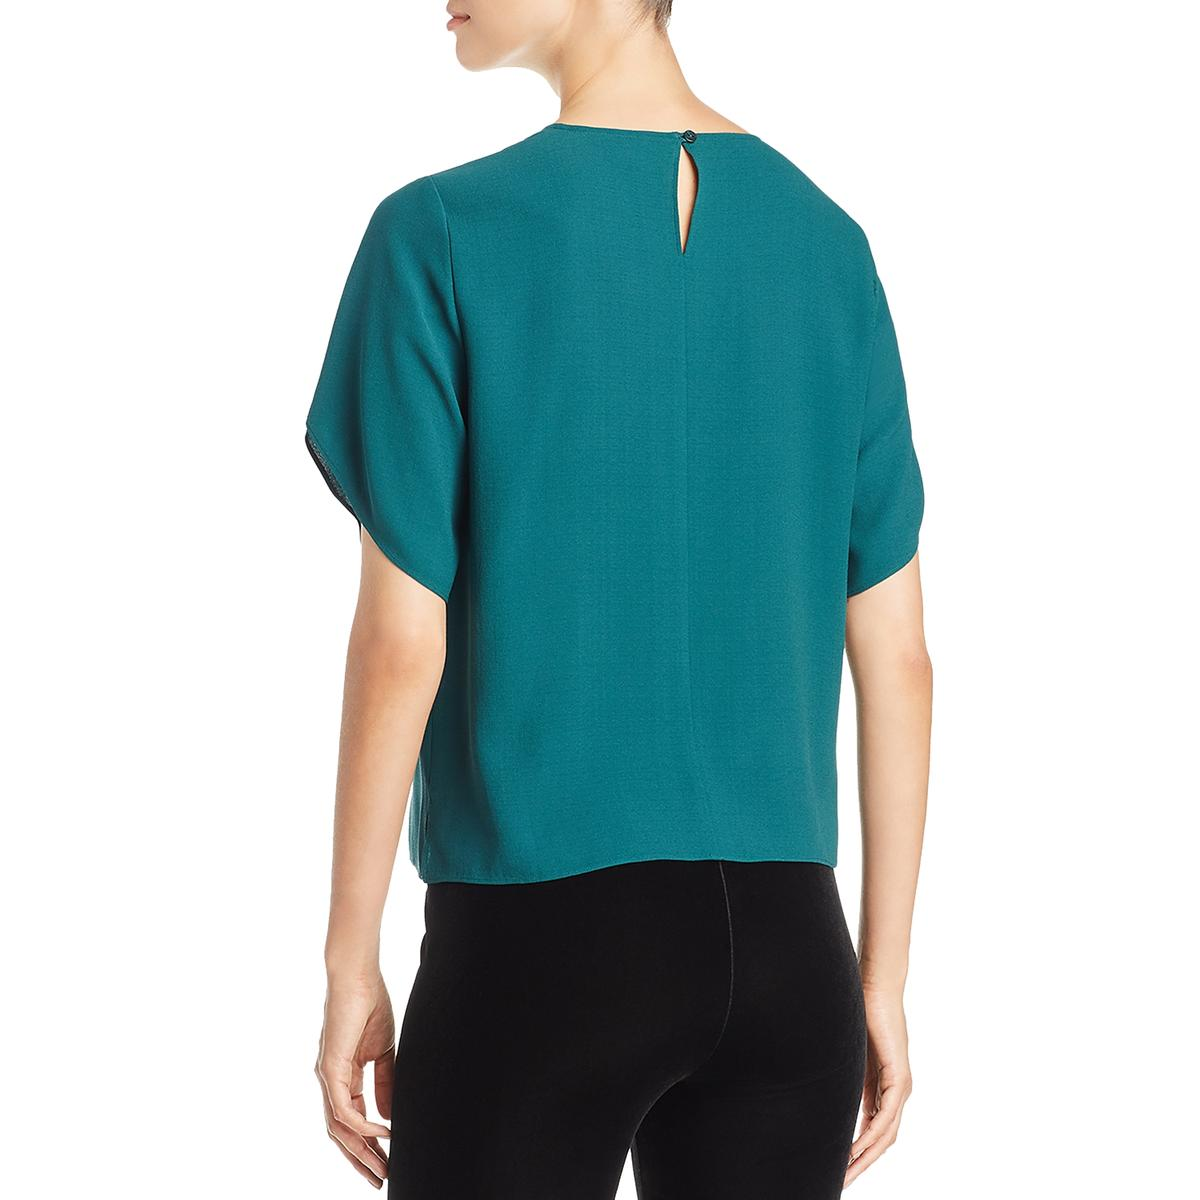 Eileen-Fisher-Womens-Silk-Jewel-Neck-Tulip-Pullover-Top-Shirt-BHFO-8831 thumbnail 6